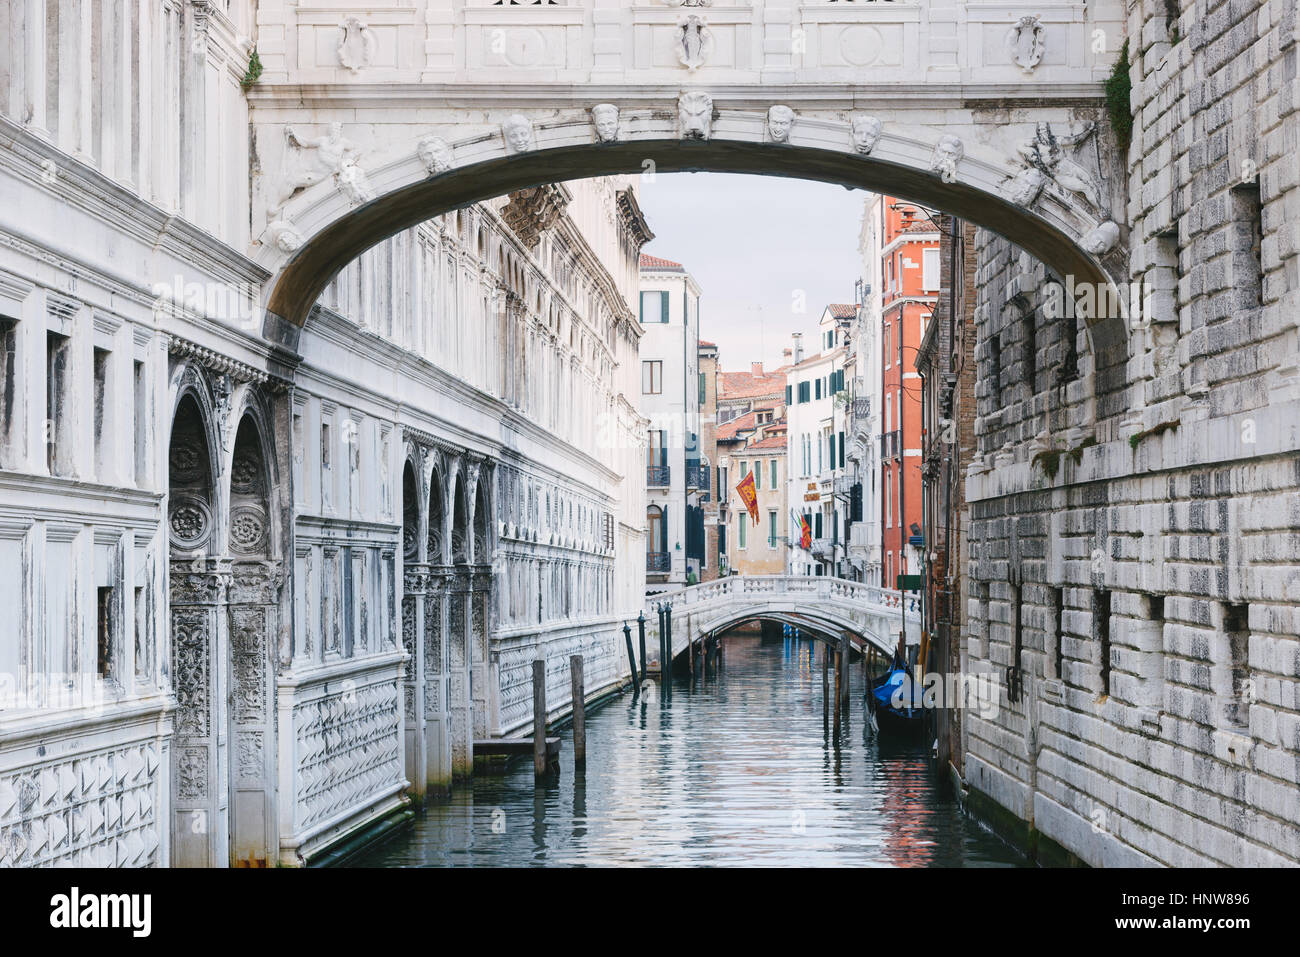 Grand Canal, Venice, Italy - Stock Image